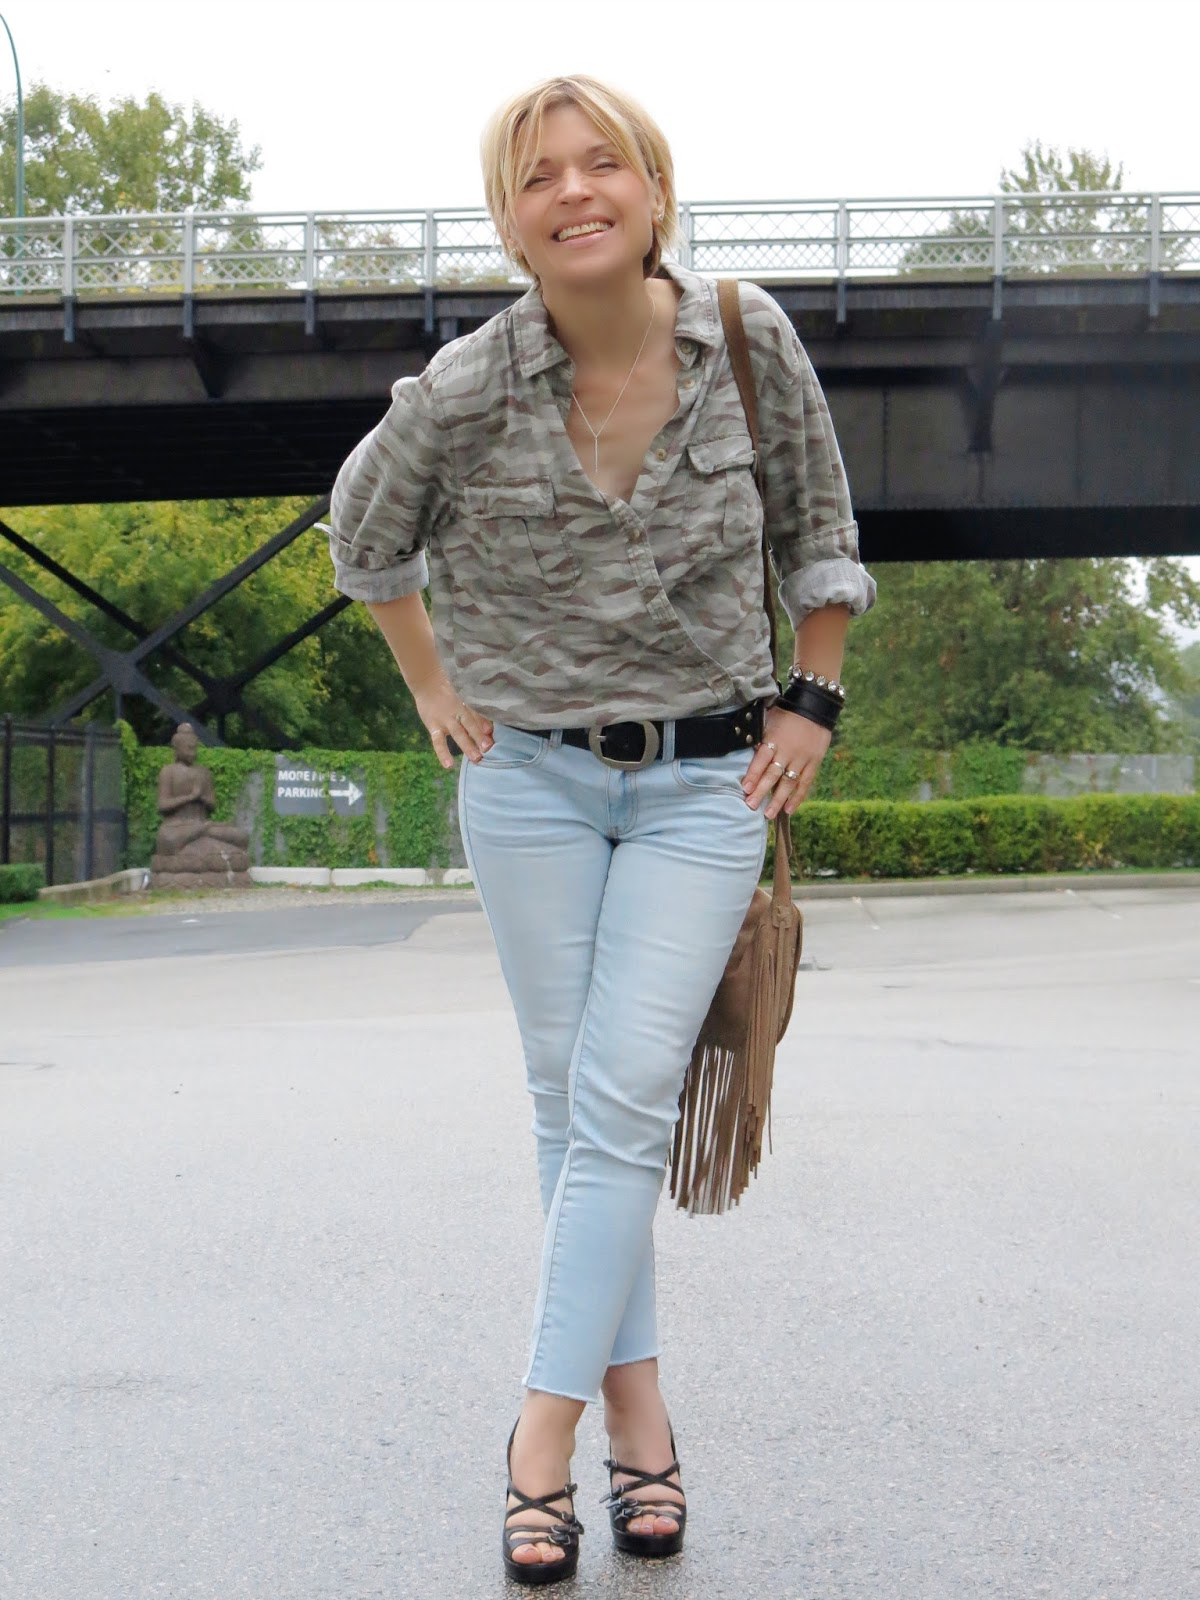 styling an oversized camo shirt with skinny jeans and strappy shoes